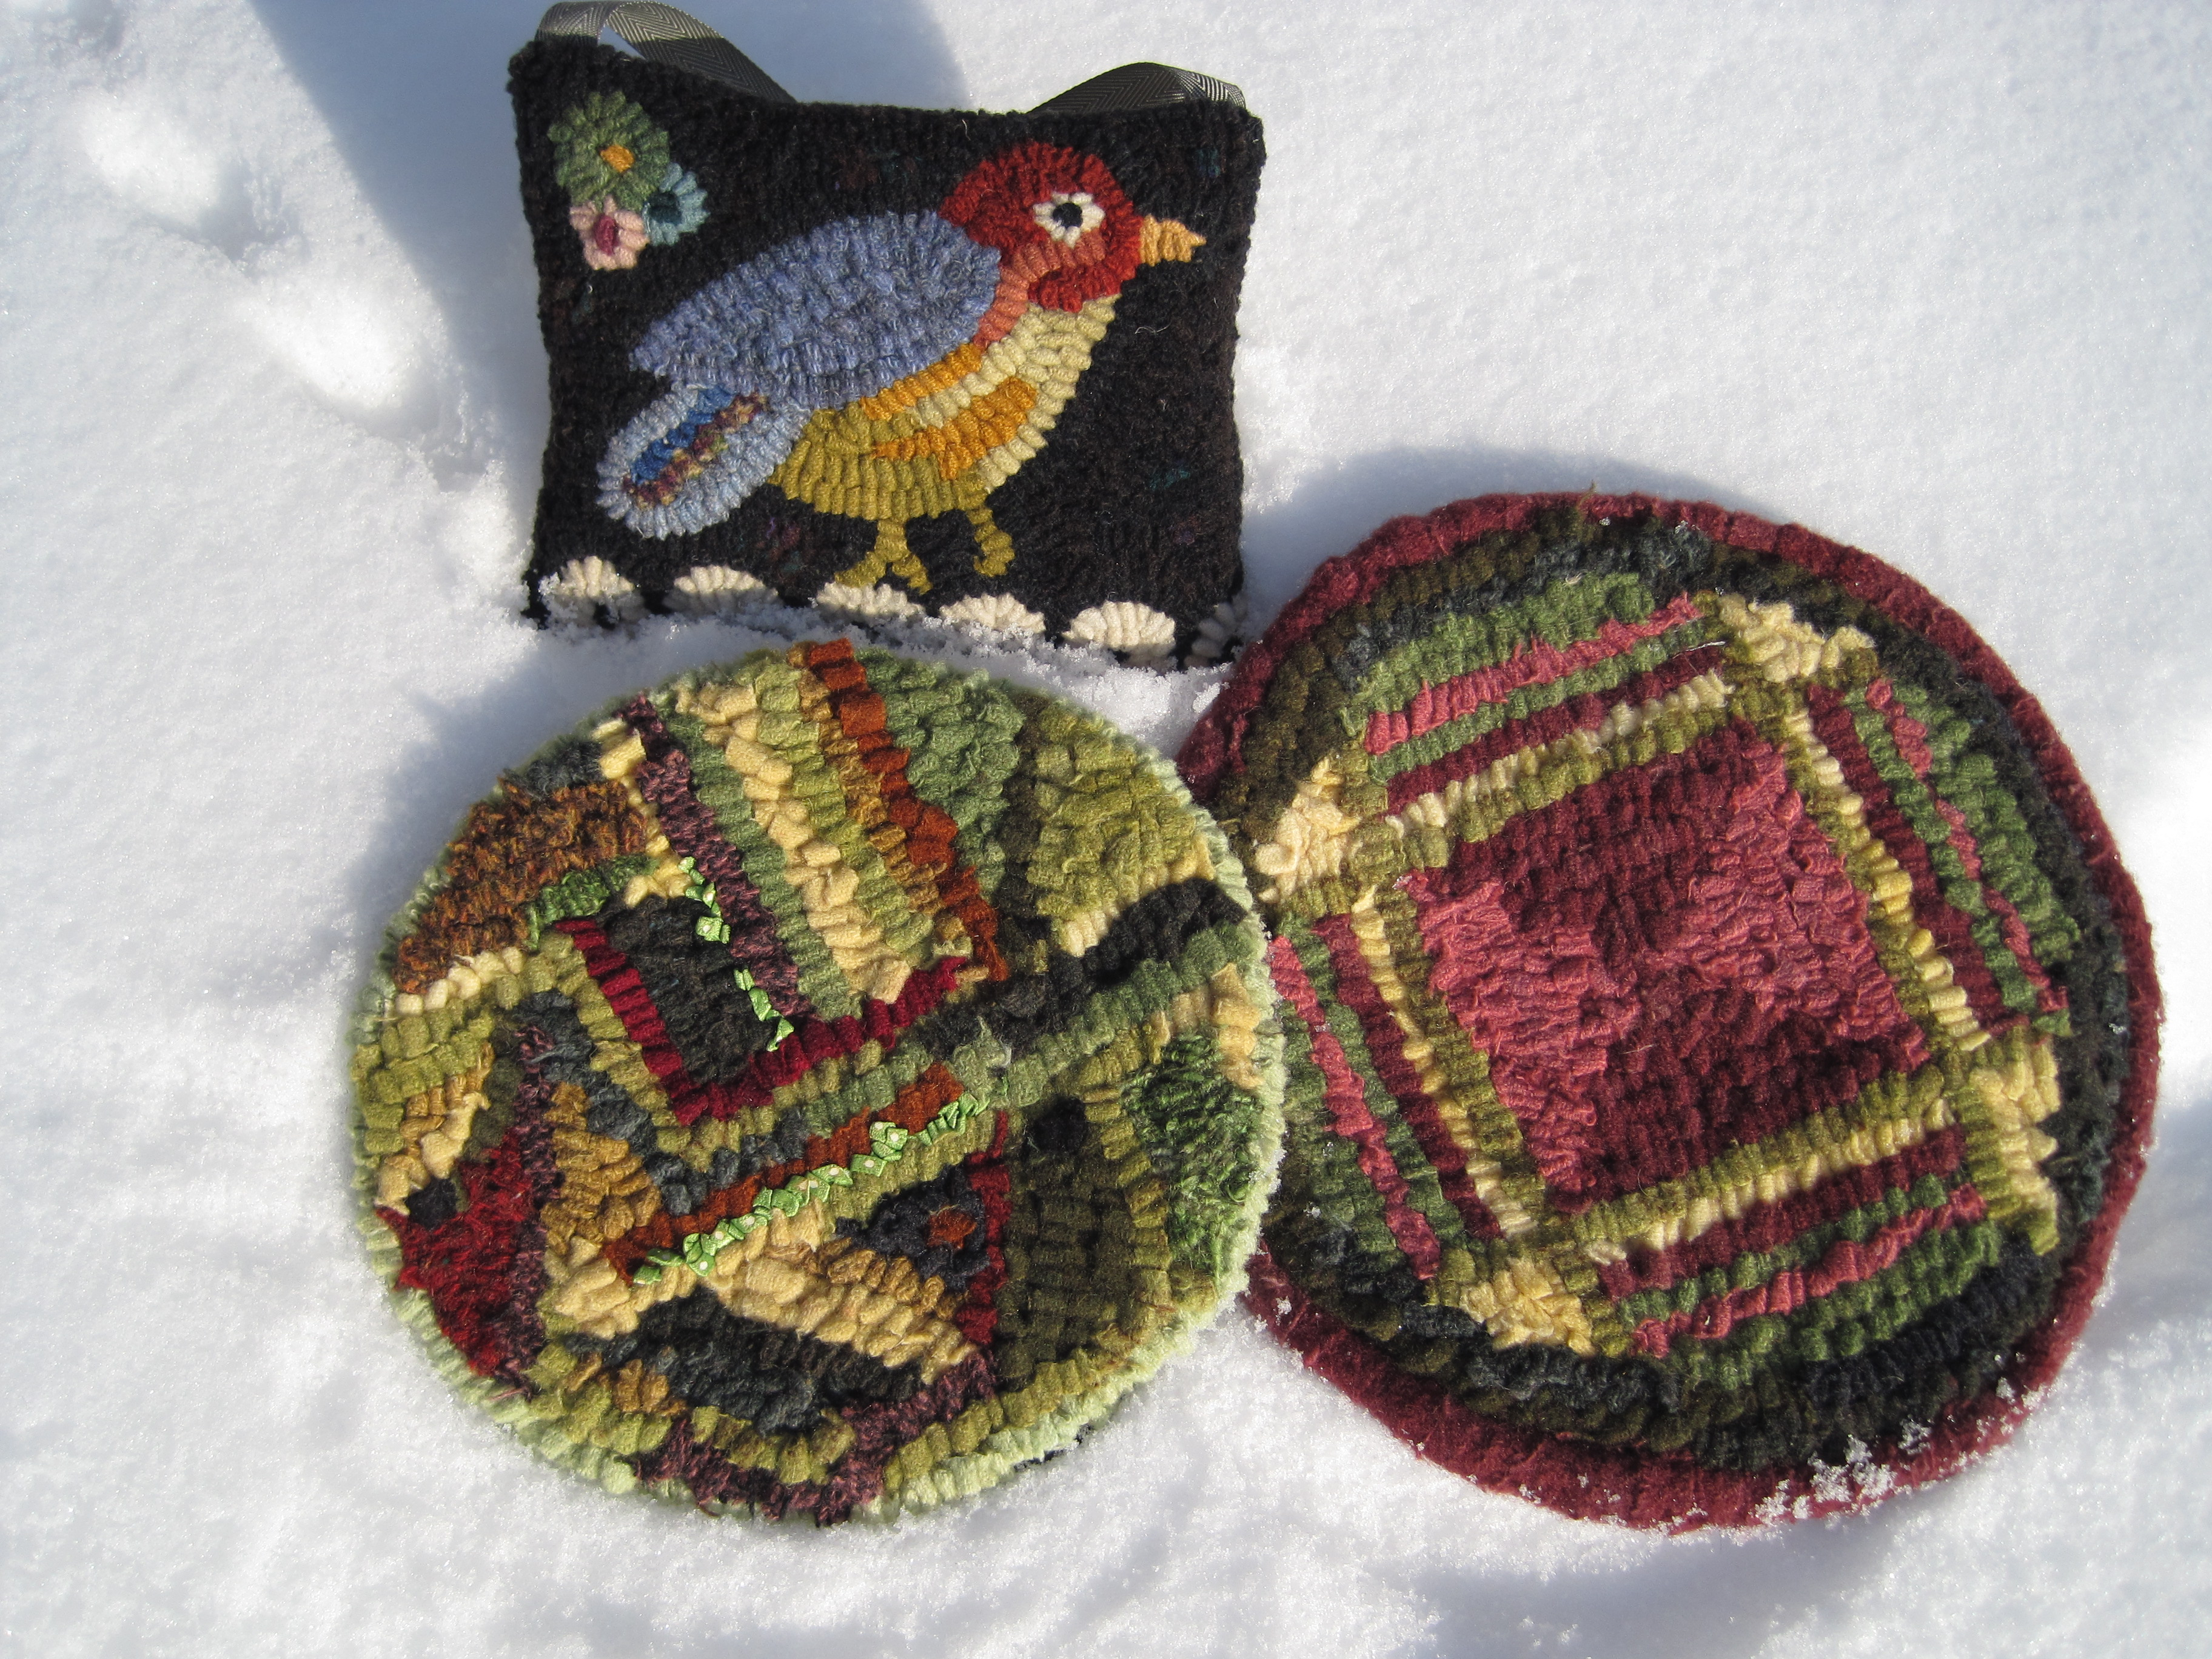 Rug Hooking Fine Craft Originally Created From Worn Out